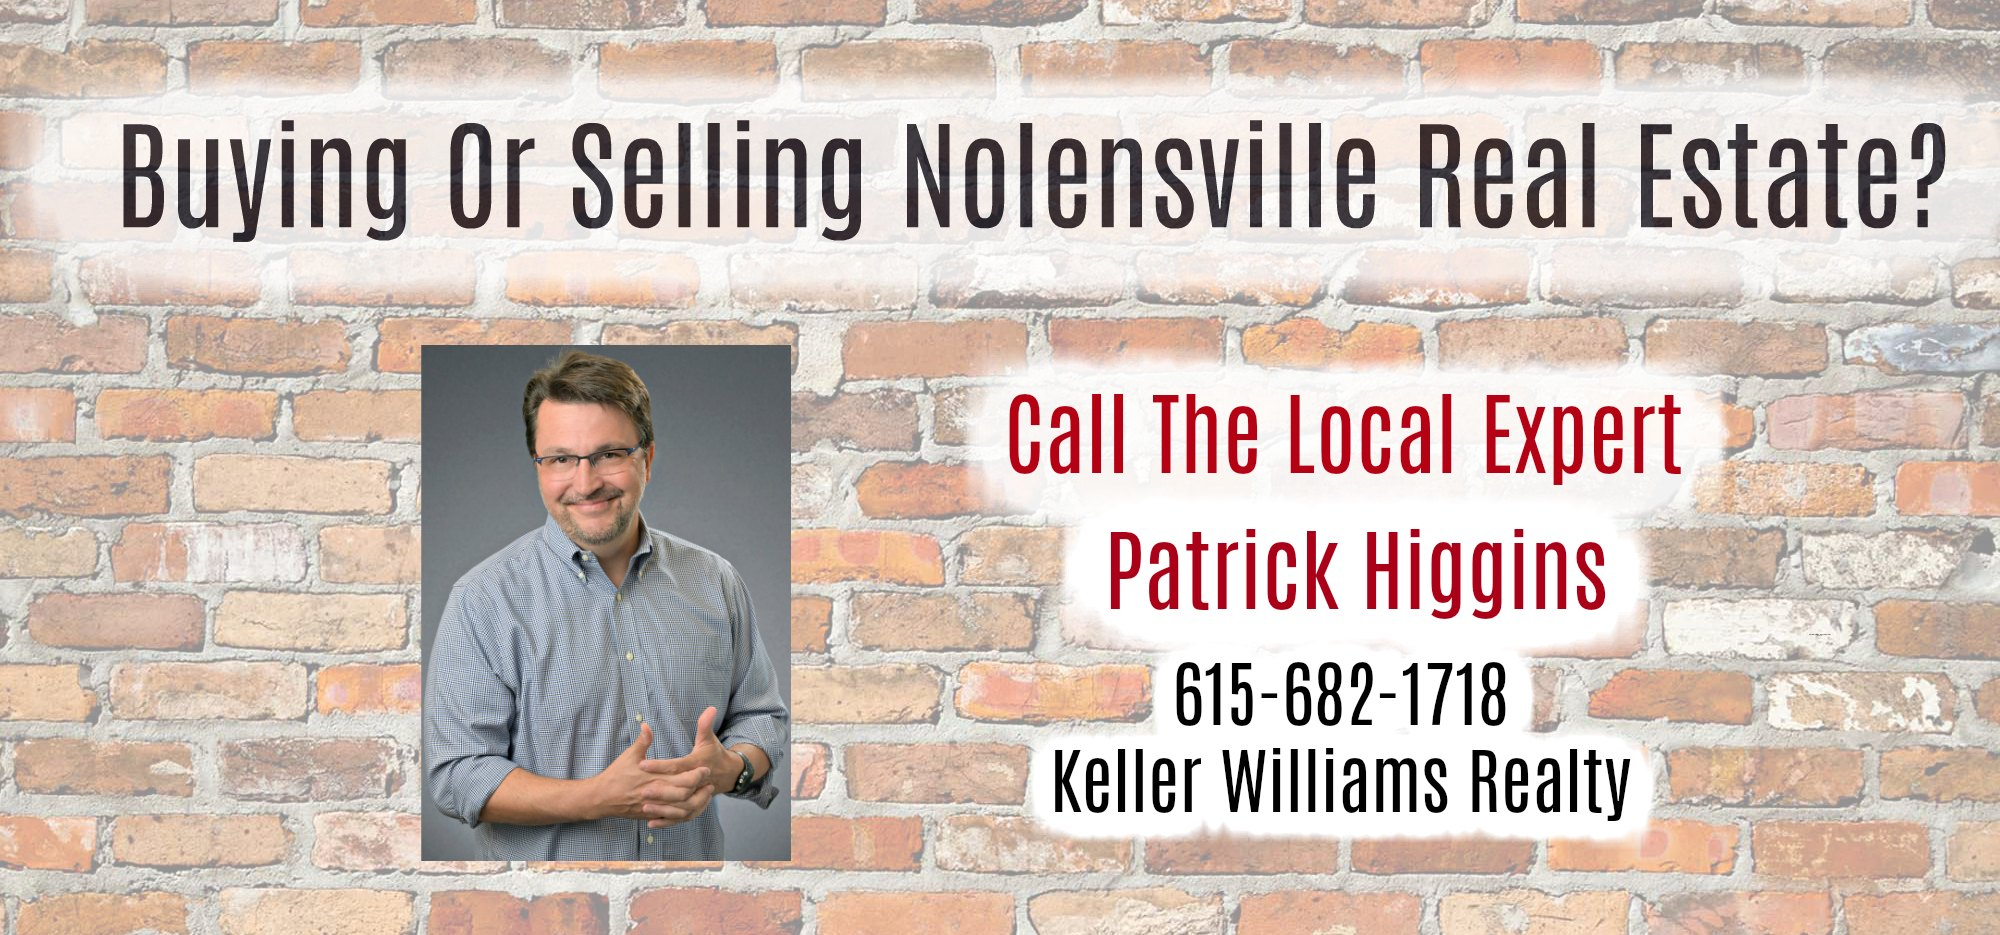 Nolensville New Construction Realtor - Patrick Higgins Keller Williams realty